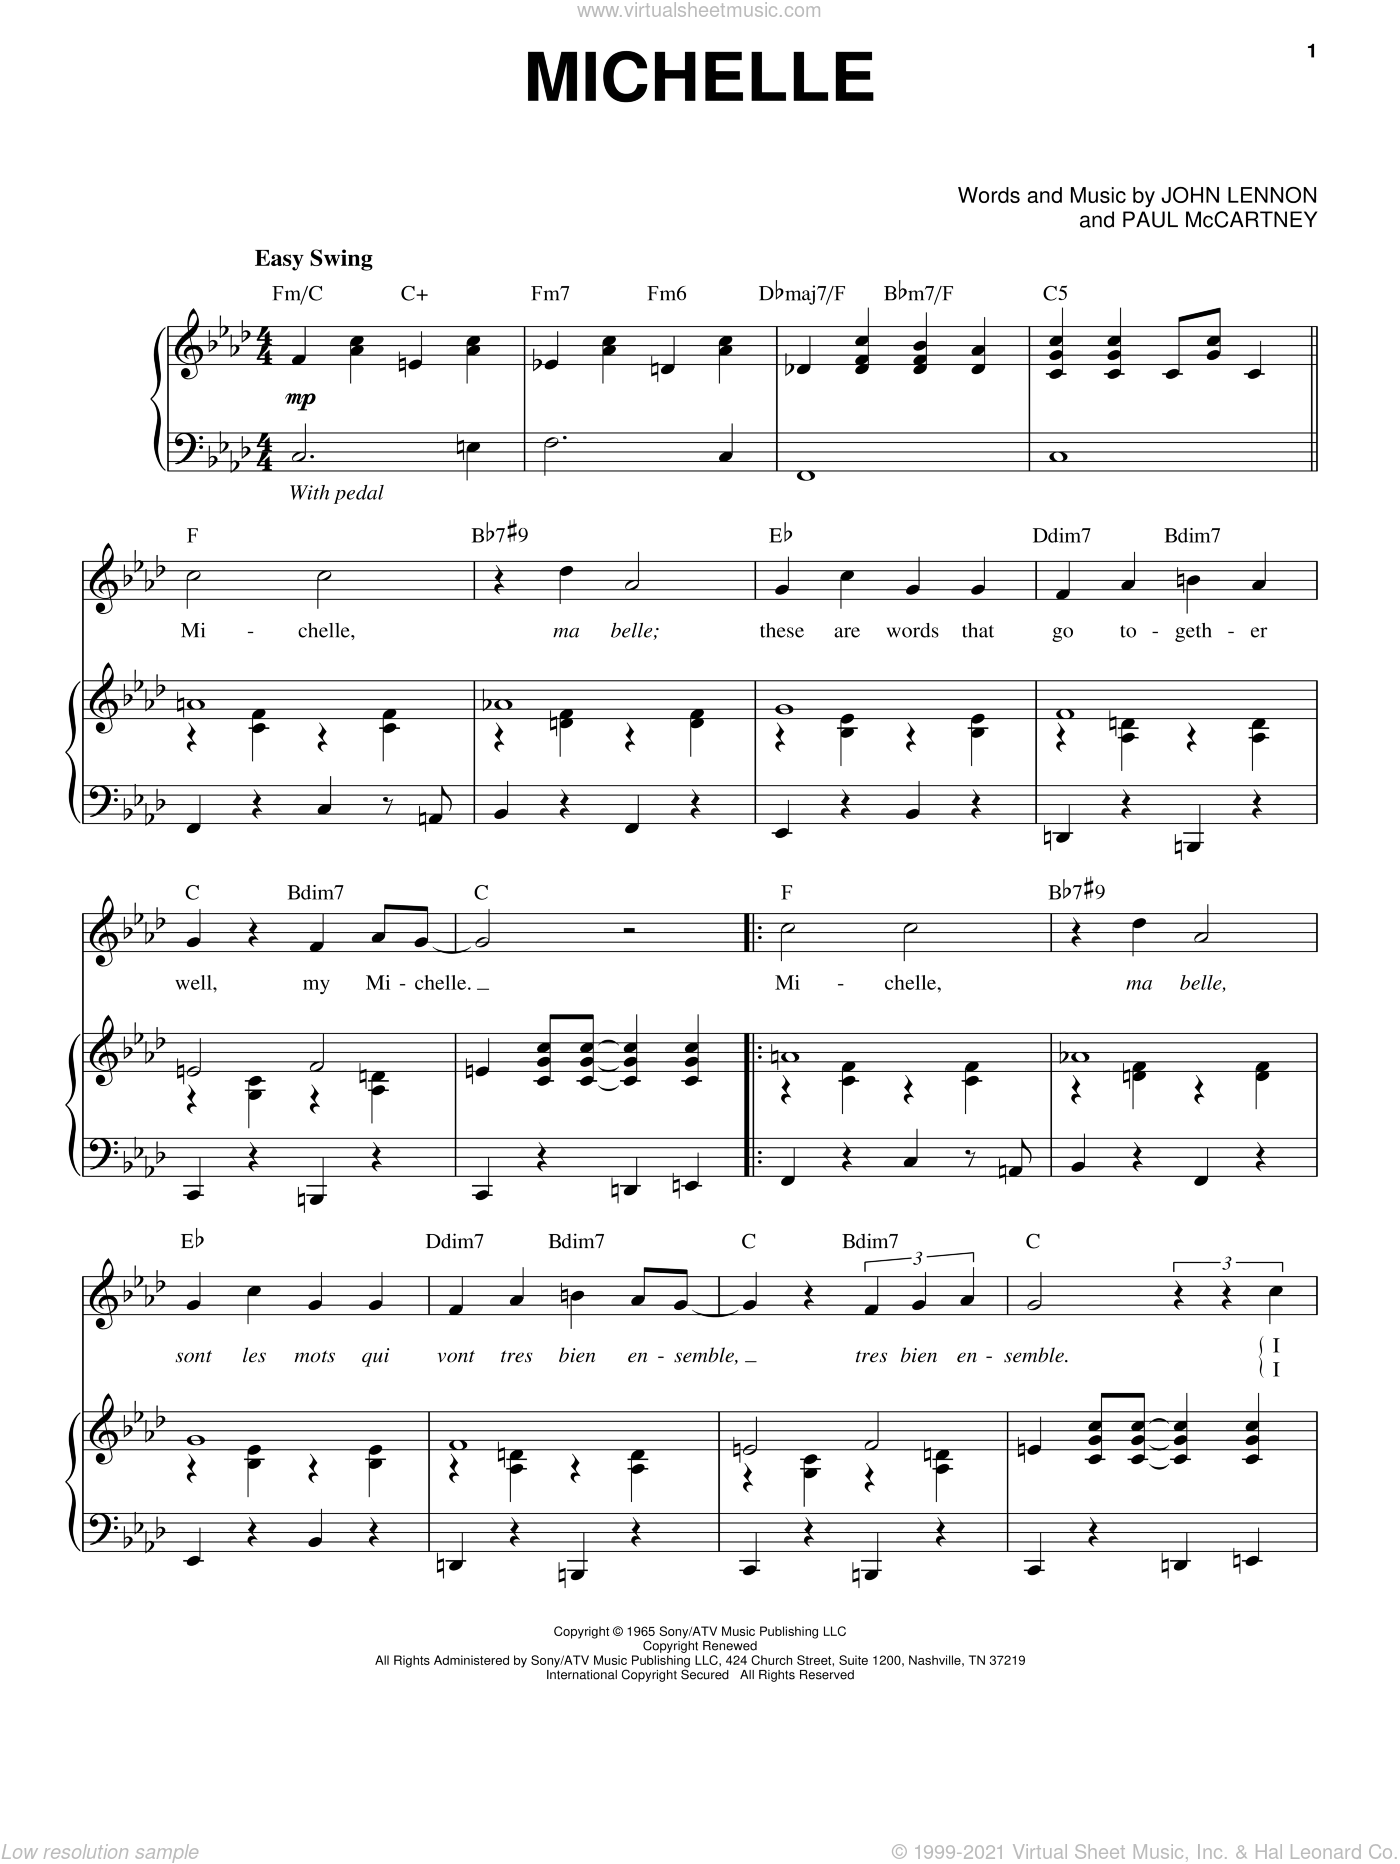 Michelle sheet music for voice and piano by The Beatles